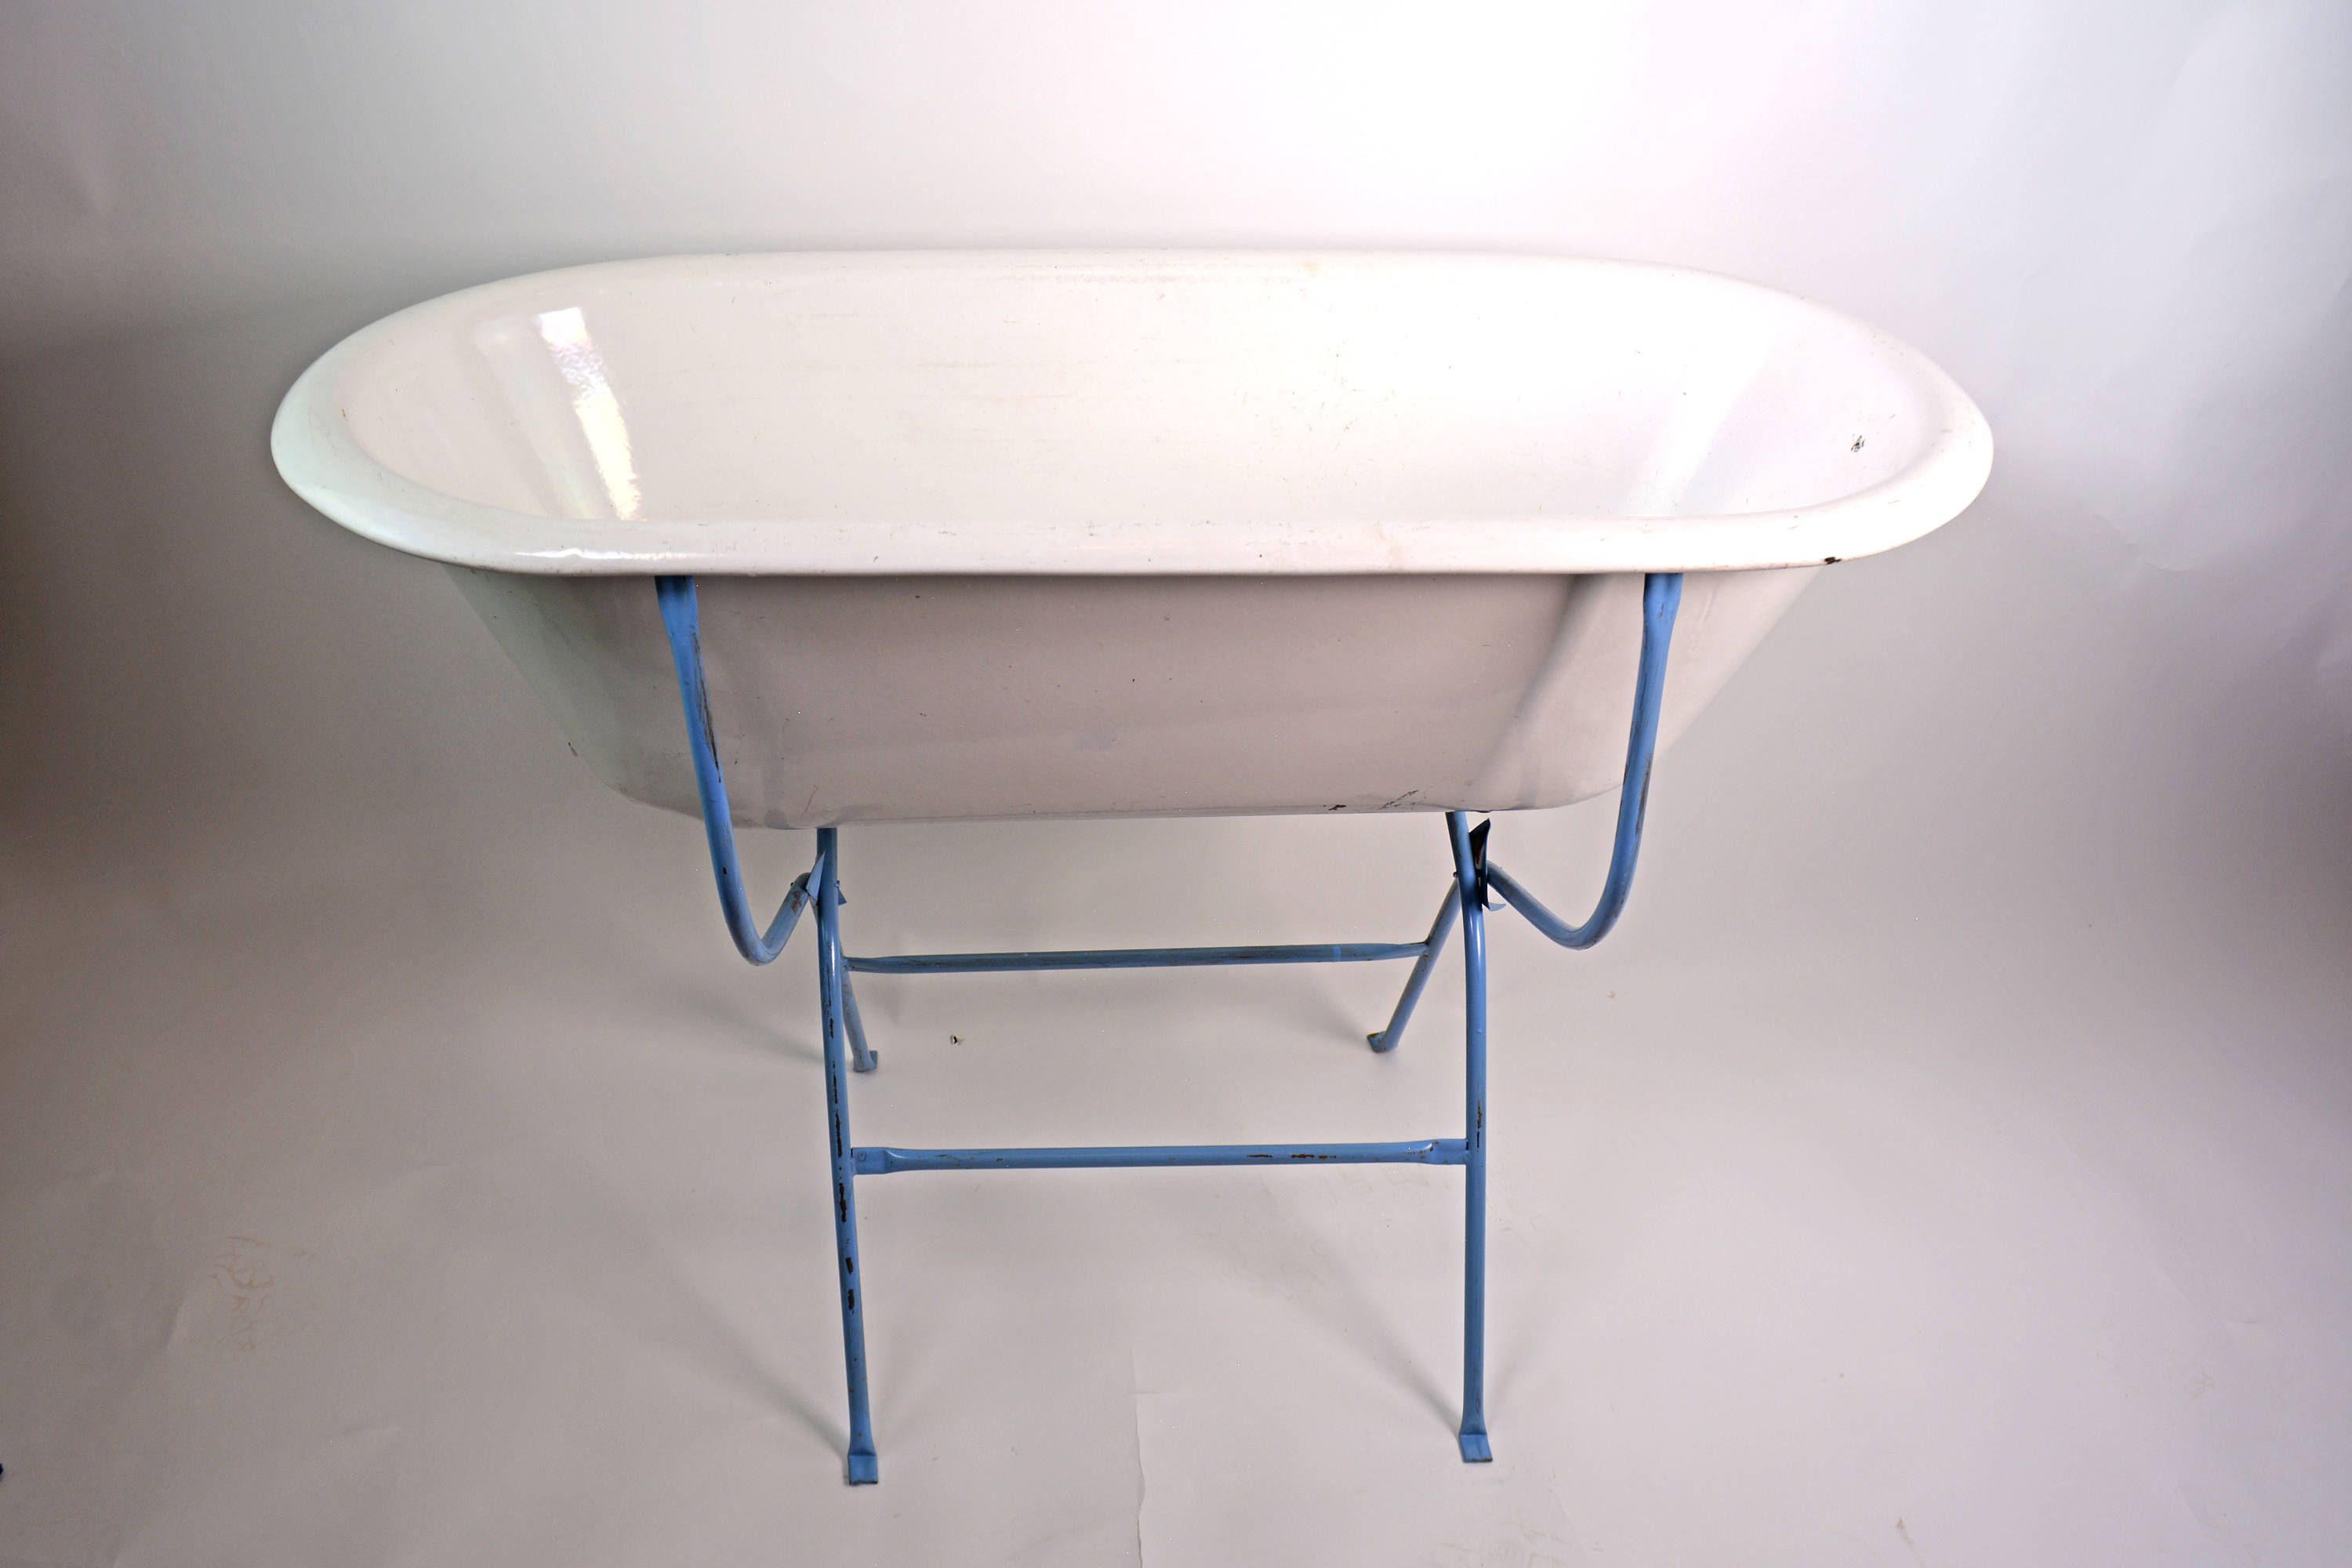 Enamel Baby Bath Tub, Vintage Tub, Antique European Bath on Stand ...